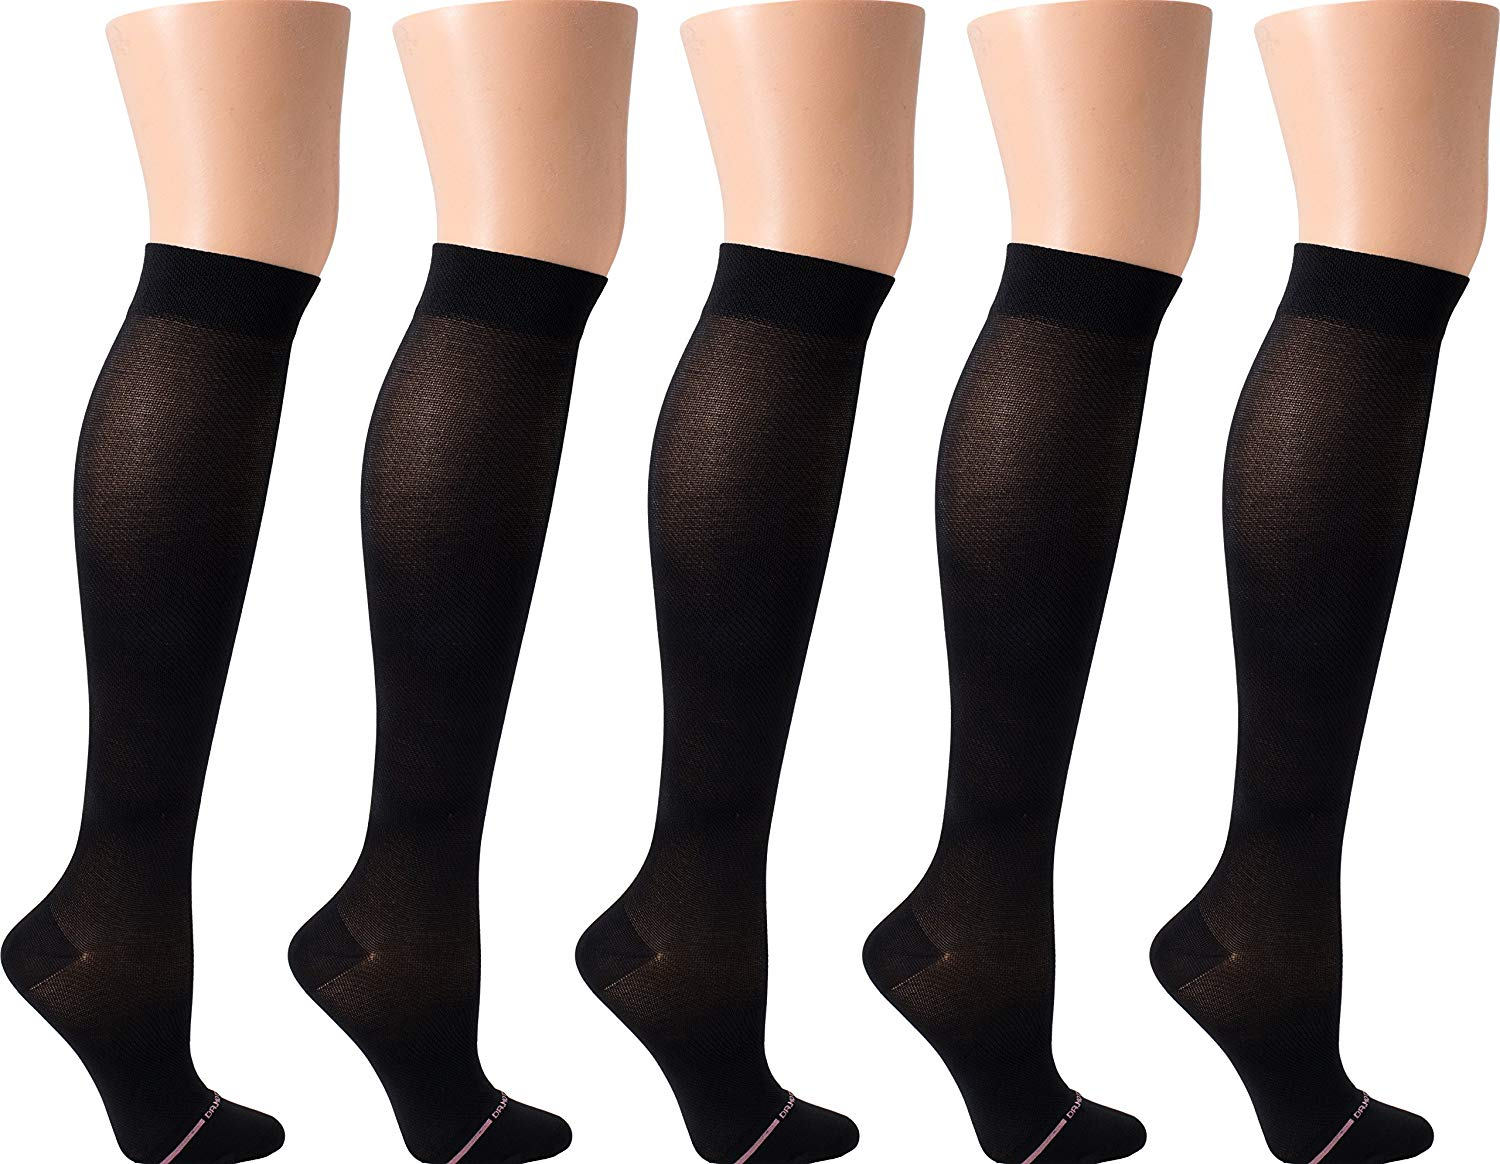 45dd562b96599 Get Quotations · Dr. Motion Women's Compression Ultra Thin Liner Knee High  Socks 5 pair pack (Black